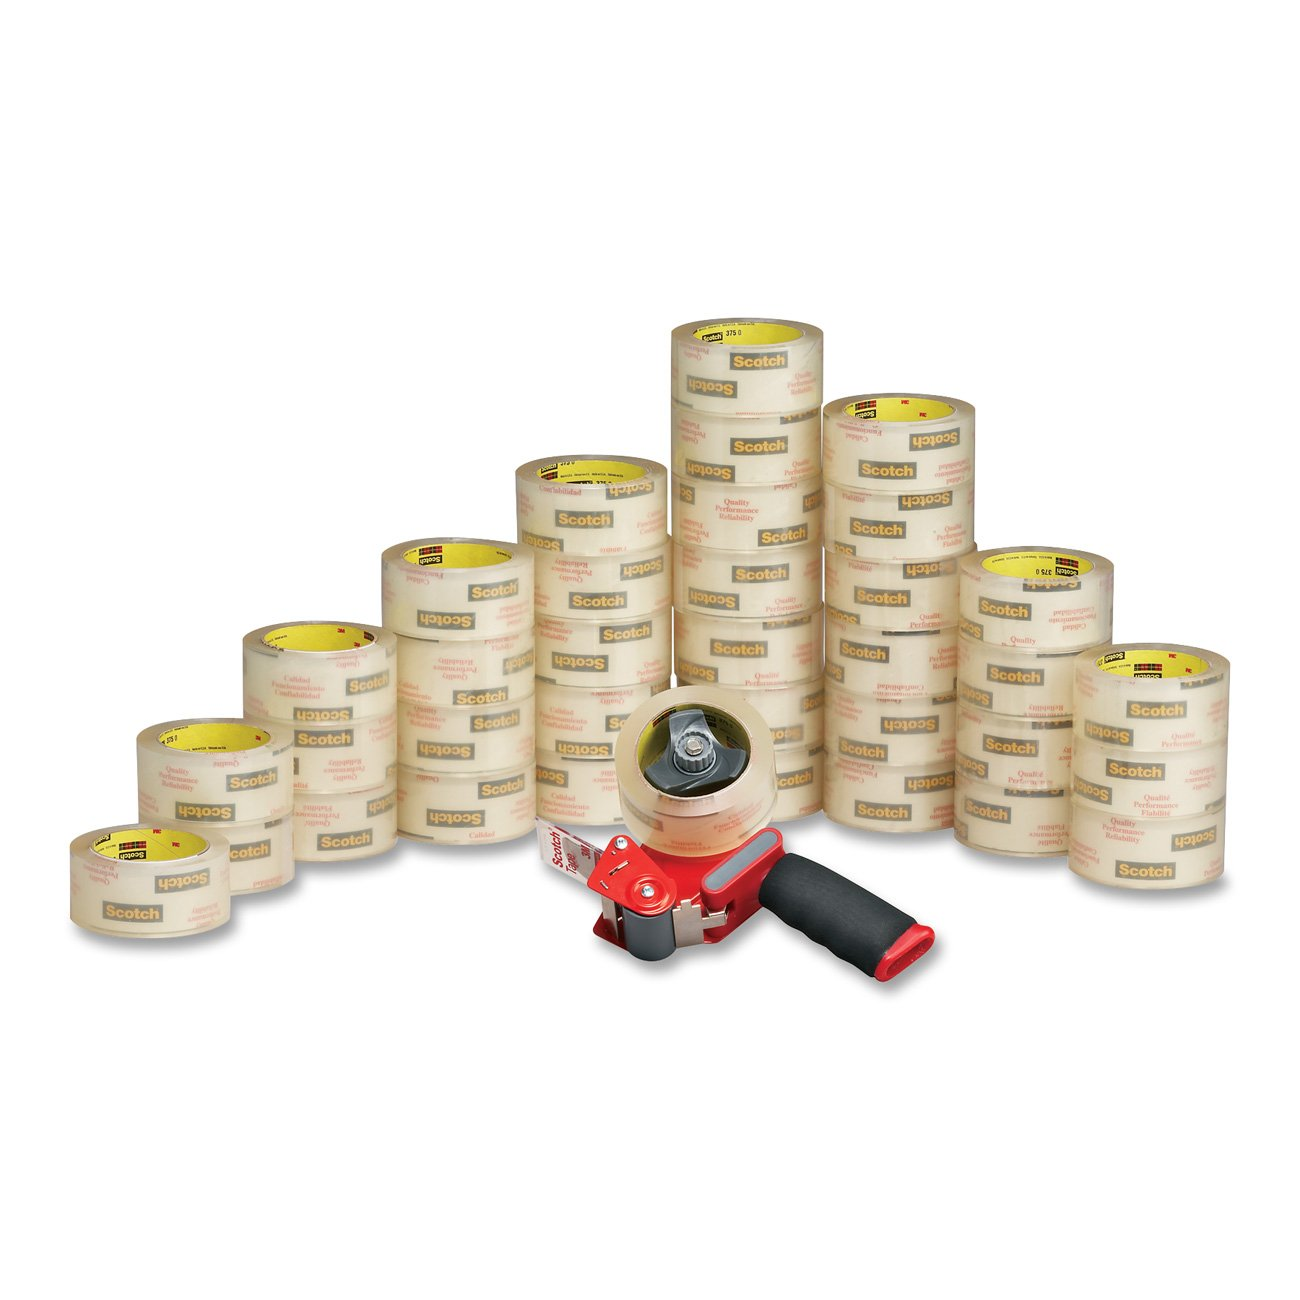 Scotch Commercial Grade Shipping Packaging Tape, 1.88 in x 54.6 yd, Case Value 36-Pack with 1 Free ST-181 Dispenser (3750-CS36ST)